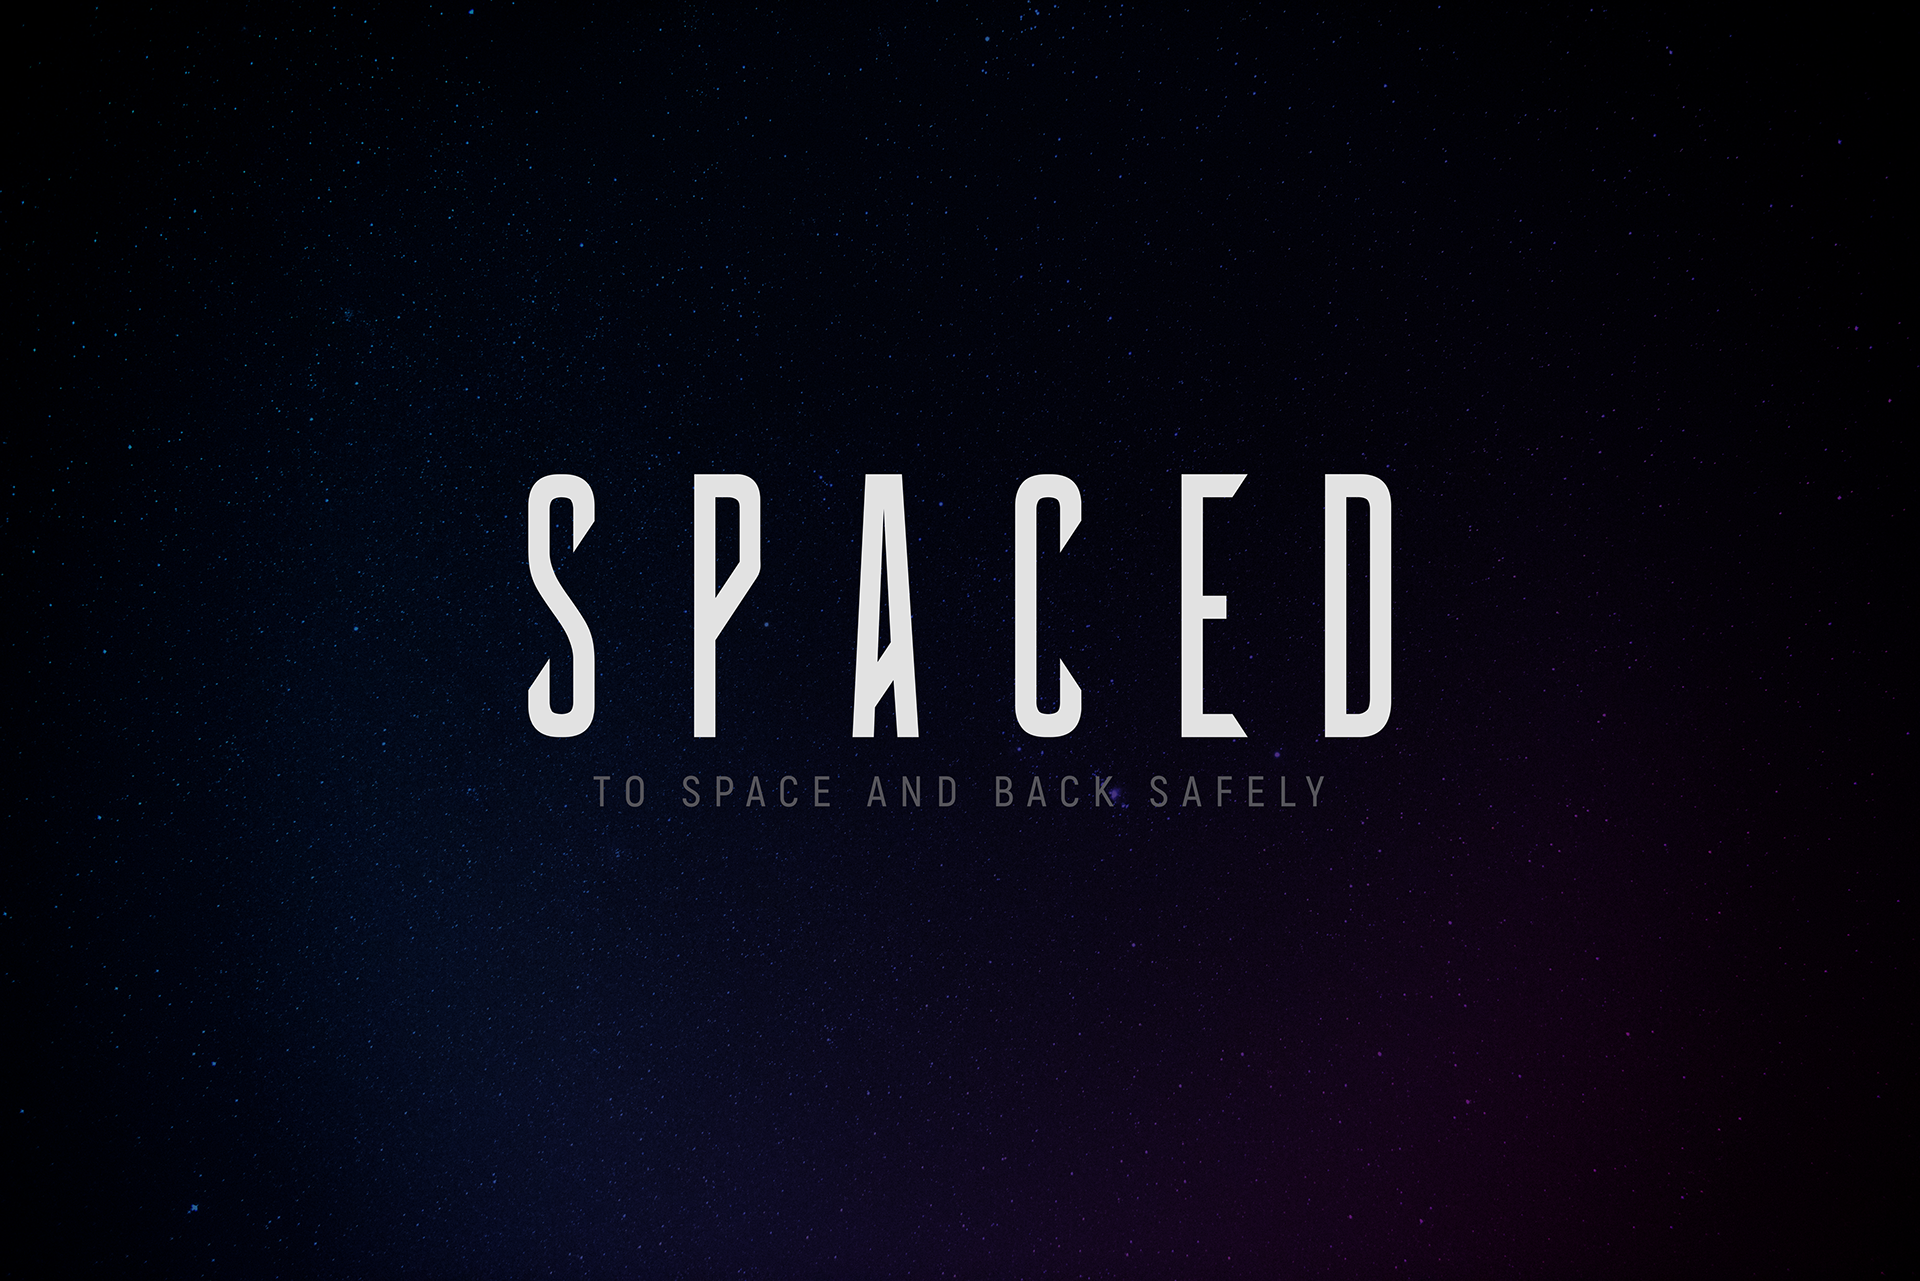 spaced_banner_image.png